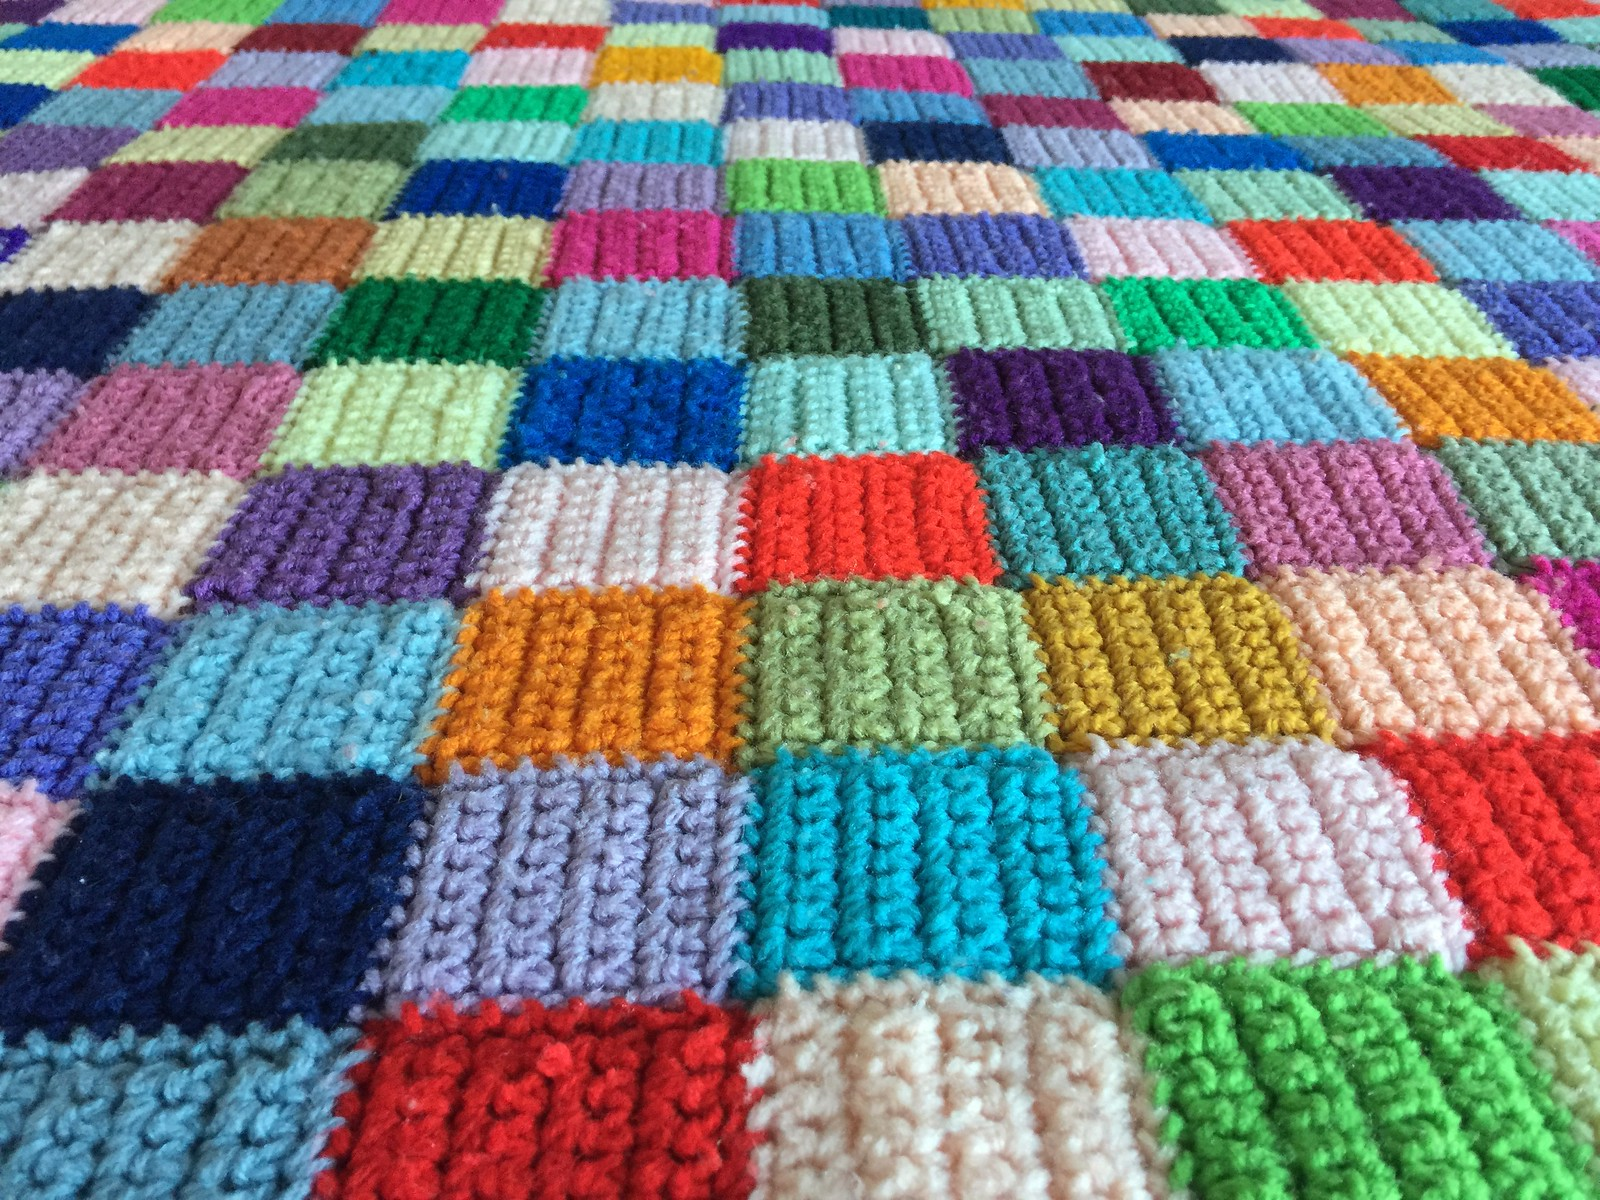 A crochet blanket made of 459 crochet squares